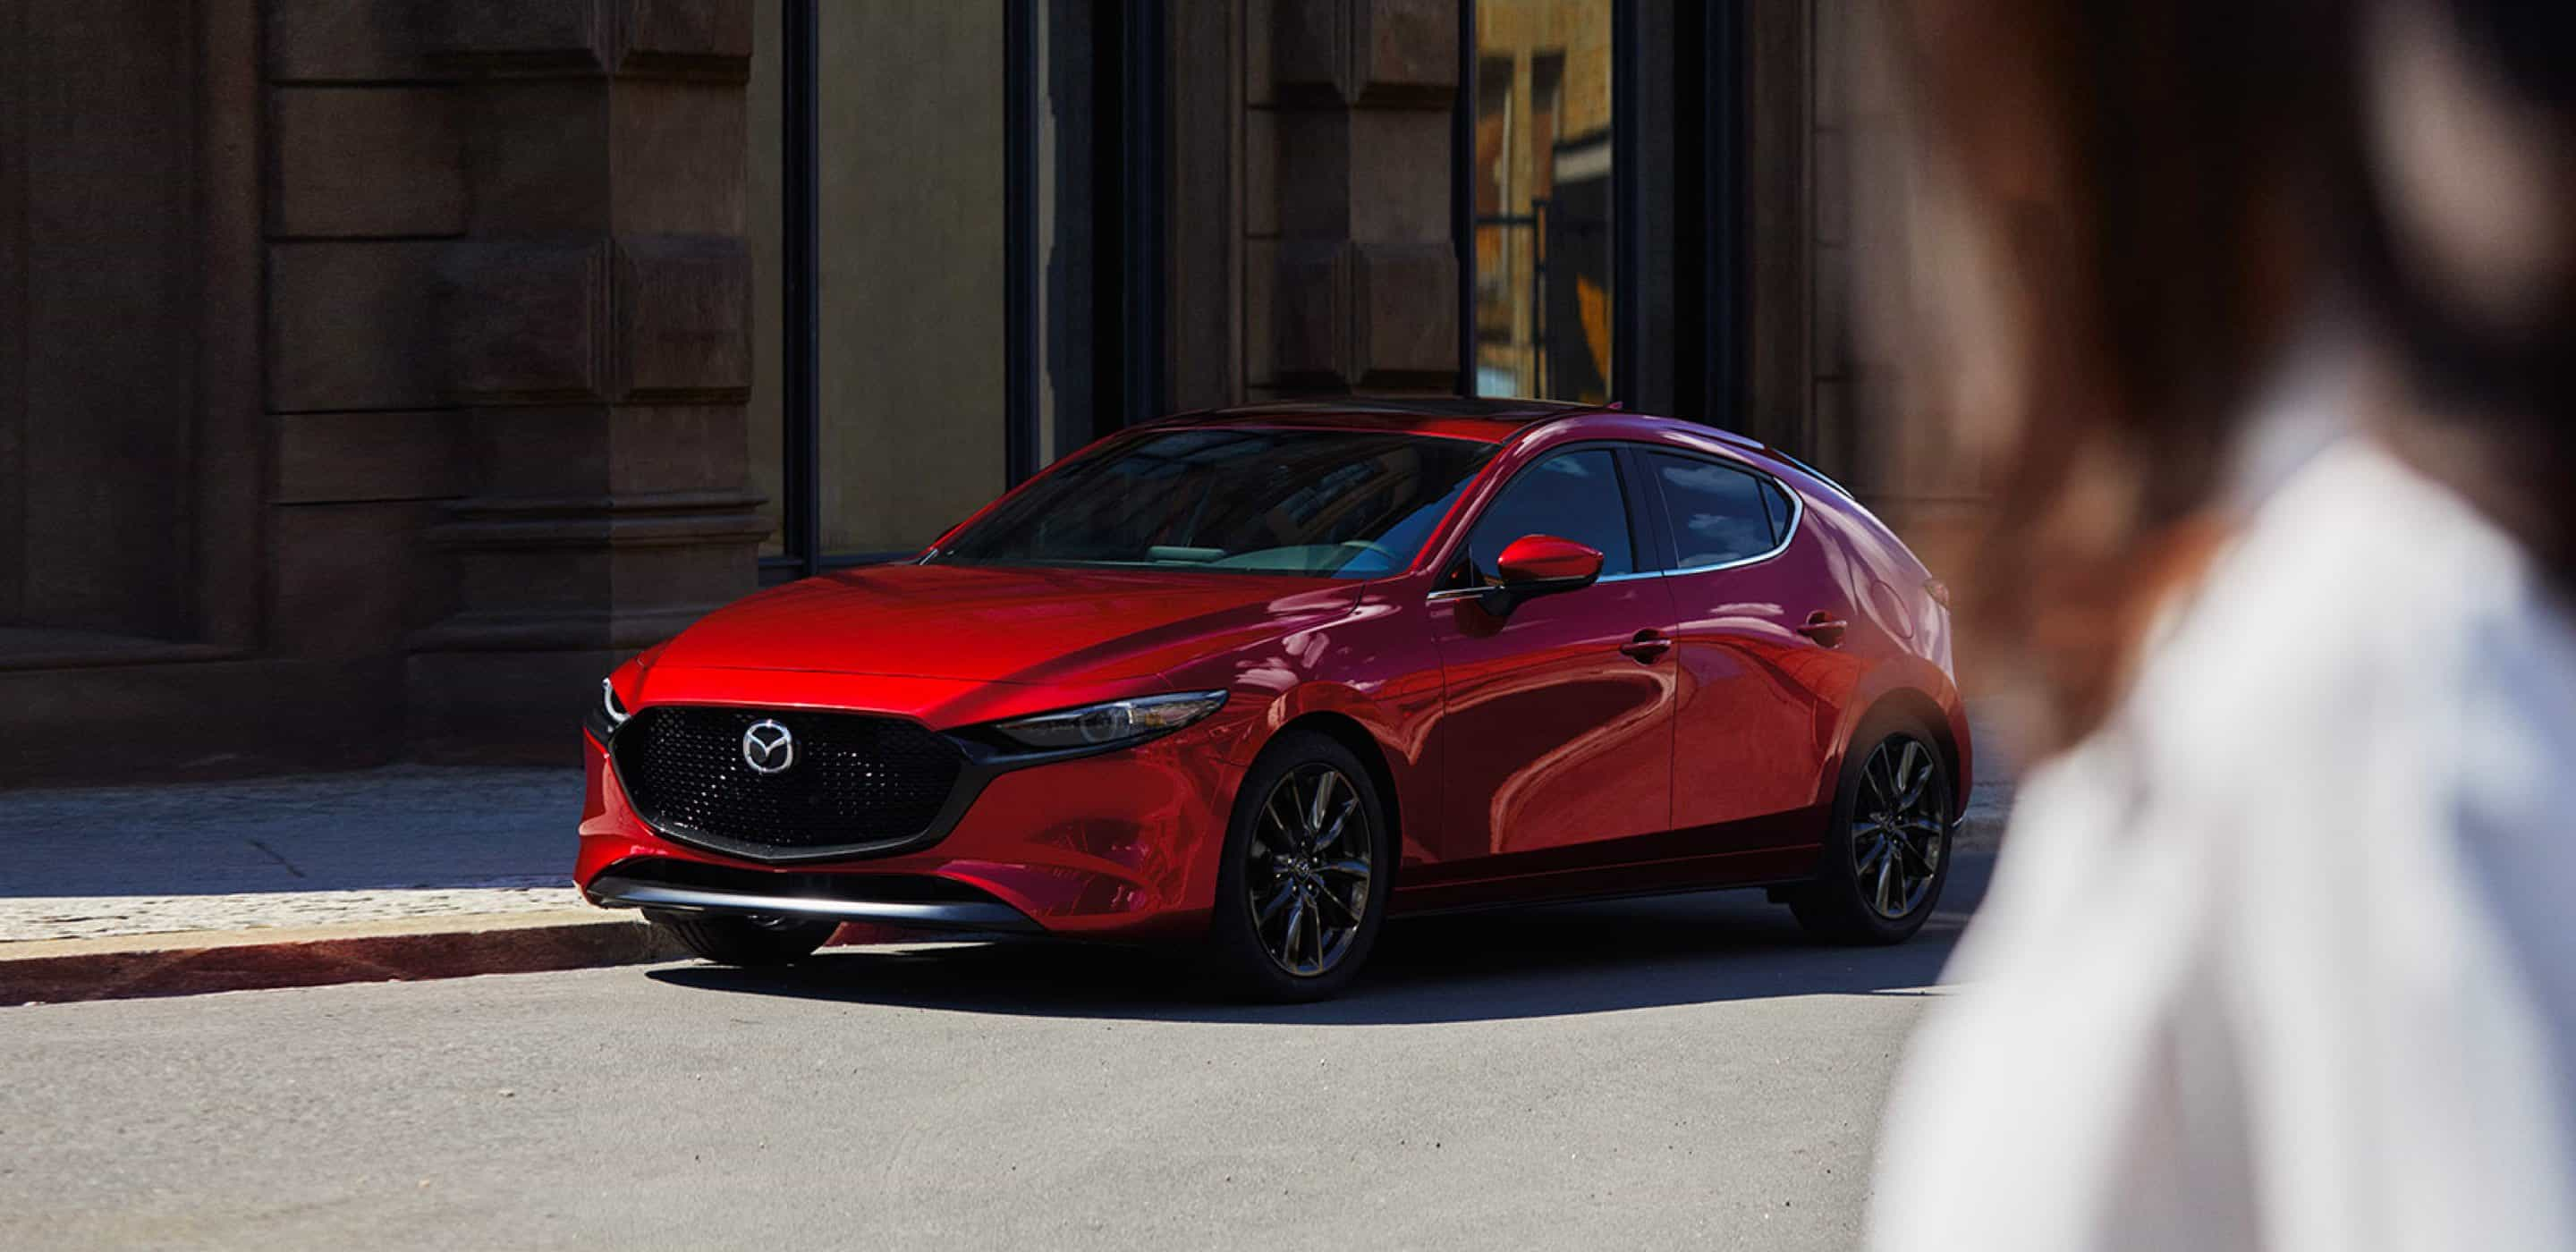 2020 Mazda3 Hatchback, 2020 WORLD CAR DESIGN OF THE YEAR